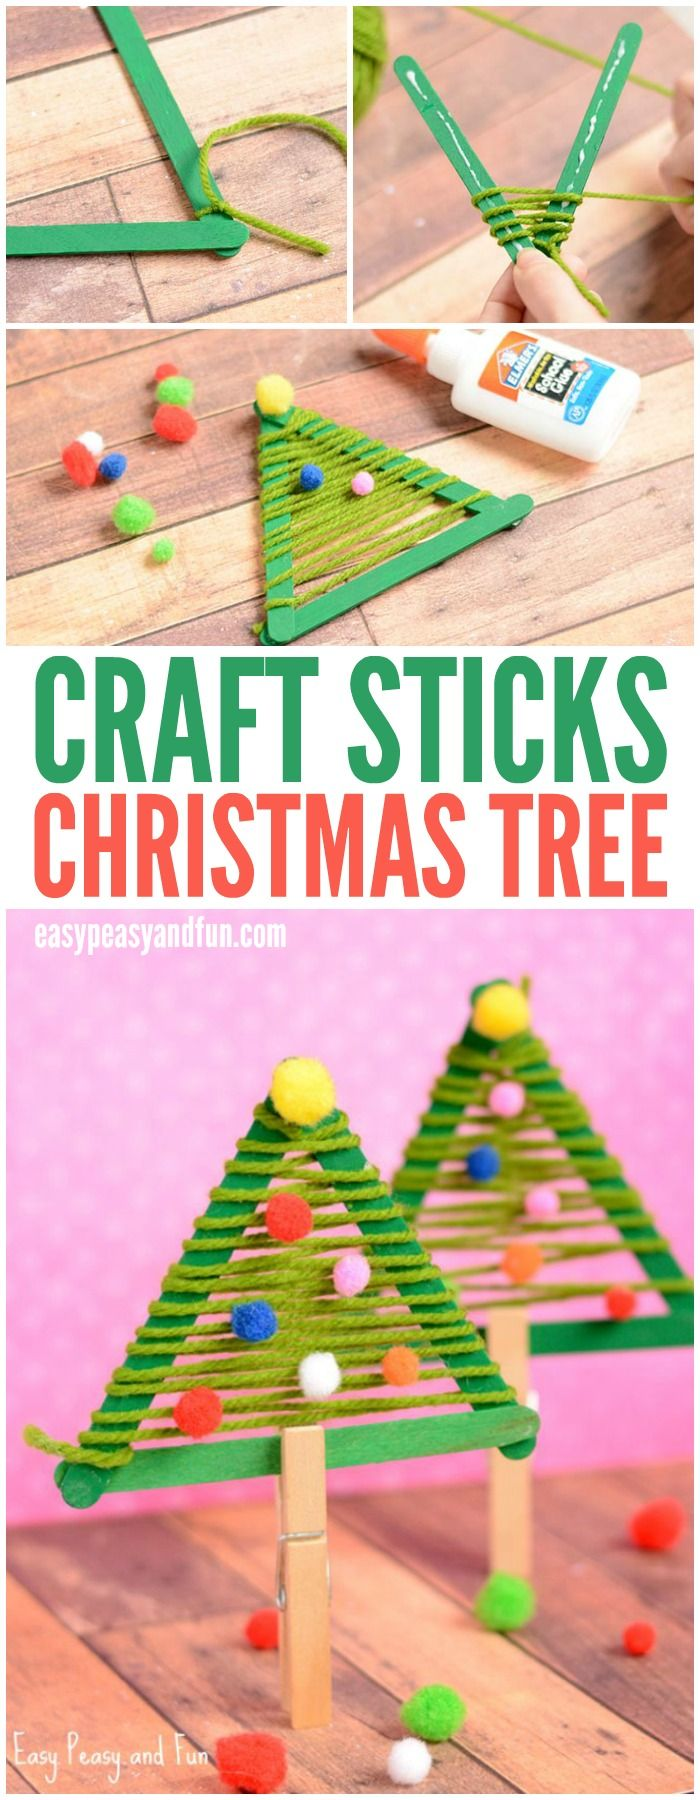 Great weaving project for preschoolers and kindergartners to make this Christmas!